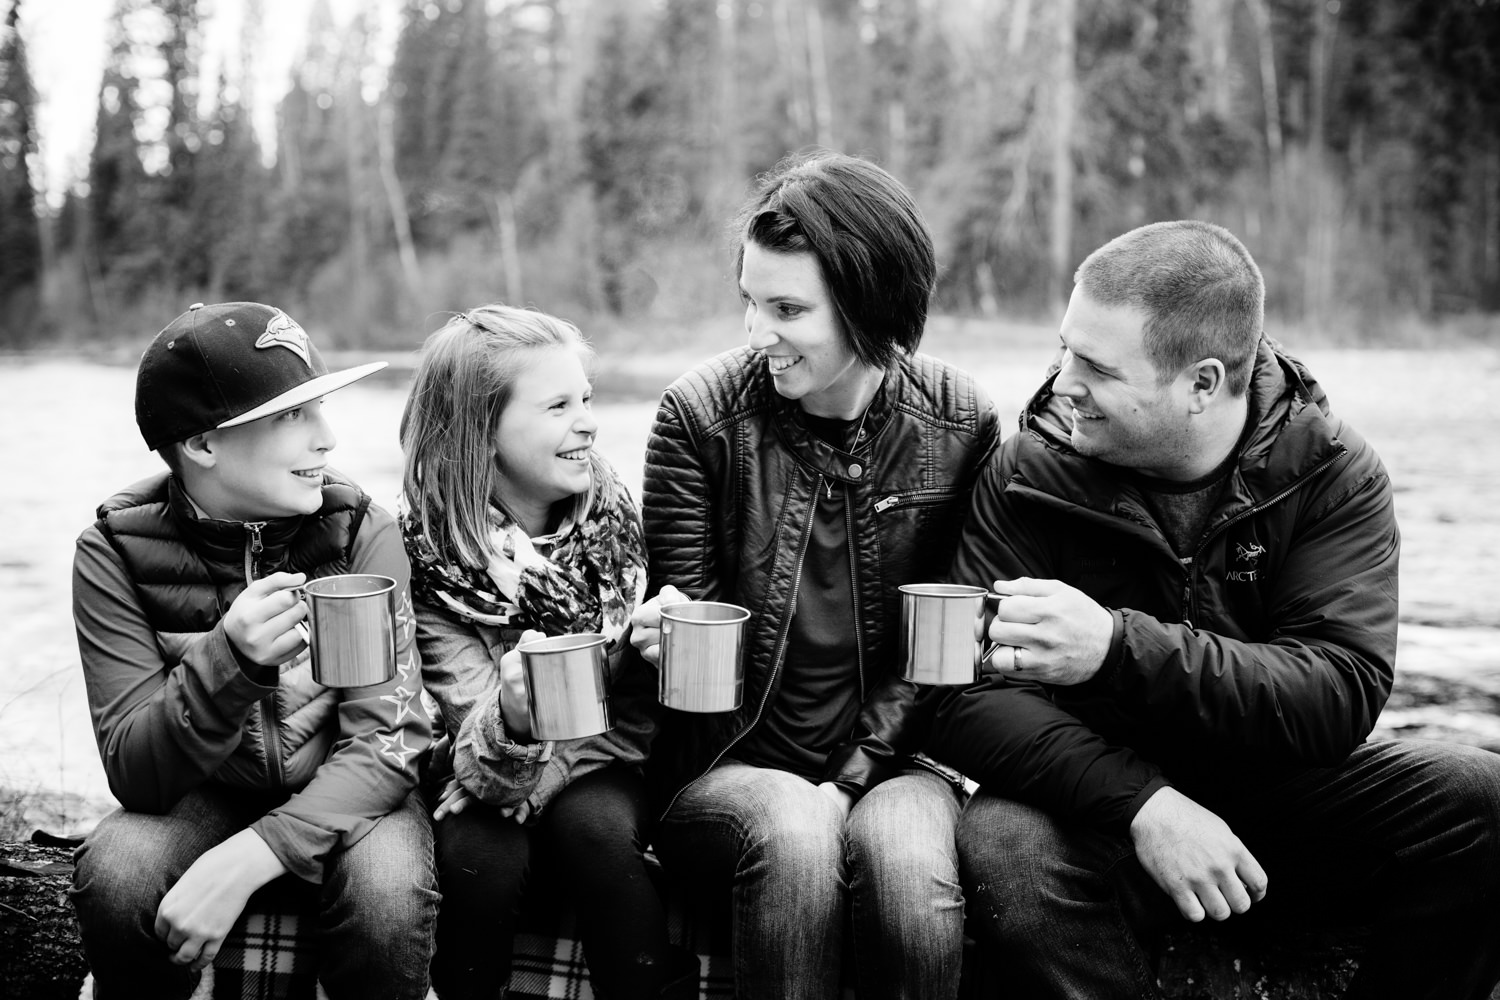 quesnel-family-photographers-quesnel-family-photography-cotton-wood-river-quesnel-bc-kelowna-photographer-julie-dorge (46 of 48).jpg